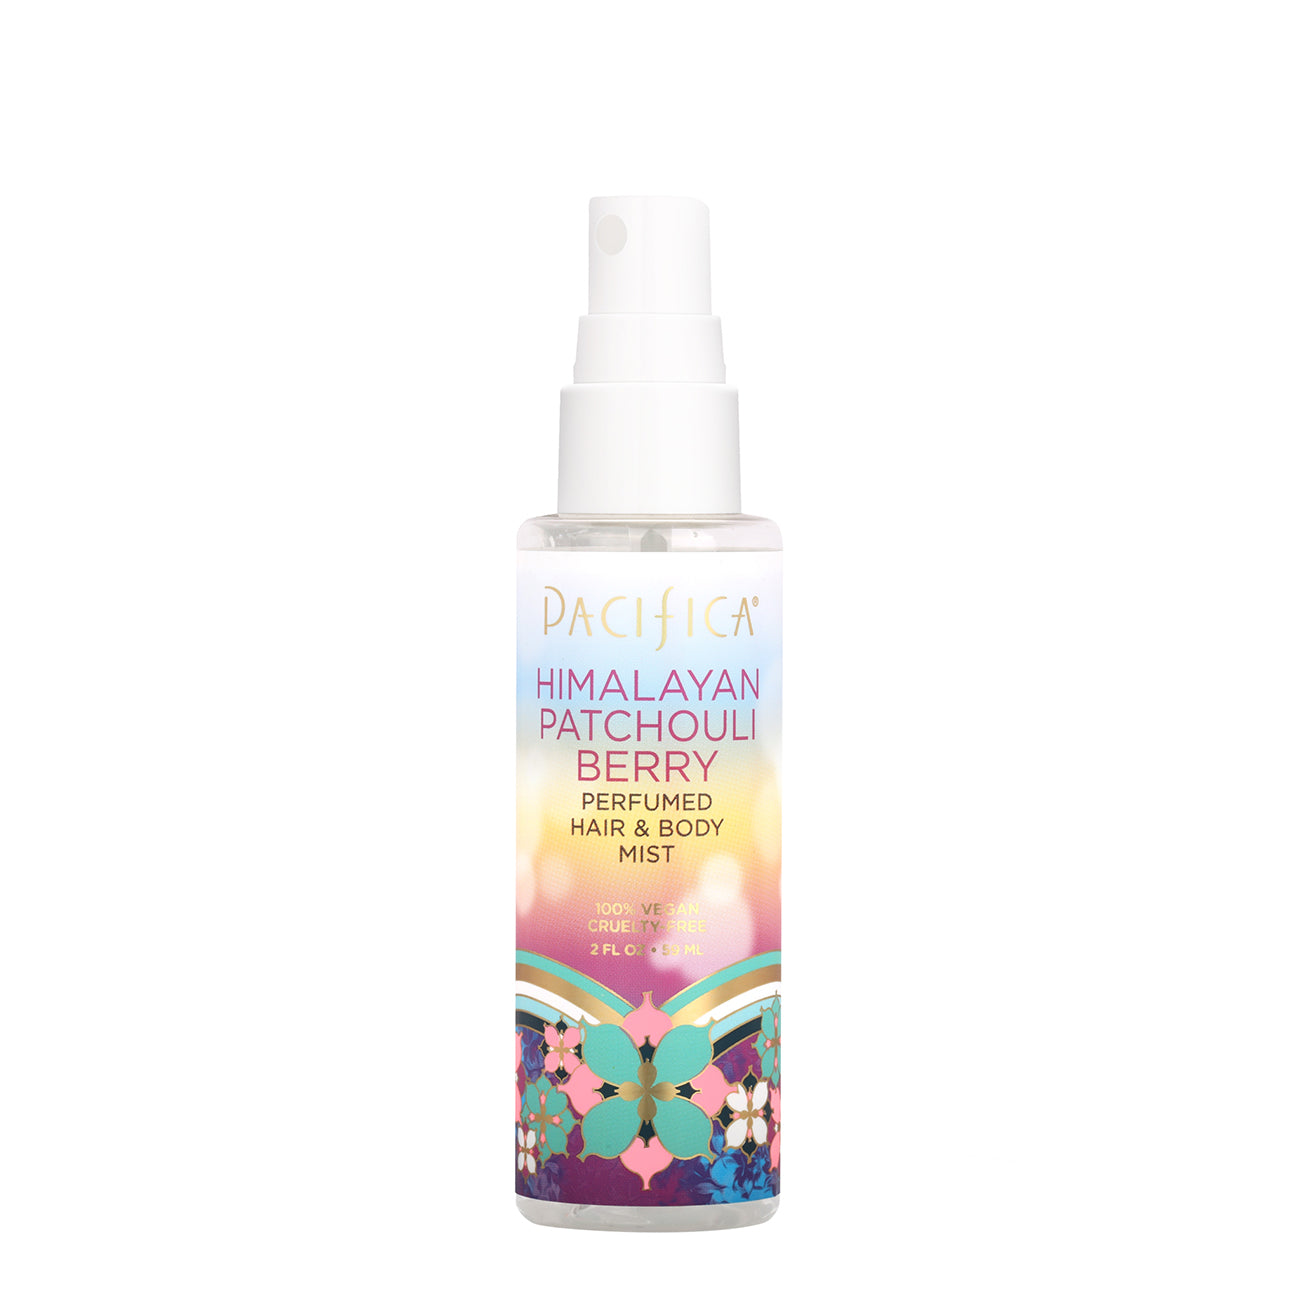 Himalayan Patchouli Berry Perfumed Hair & Body Mist (2 oz)